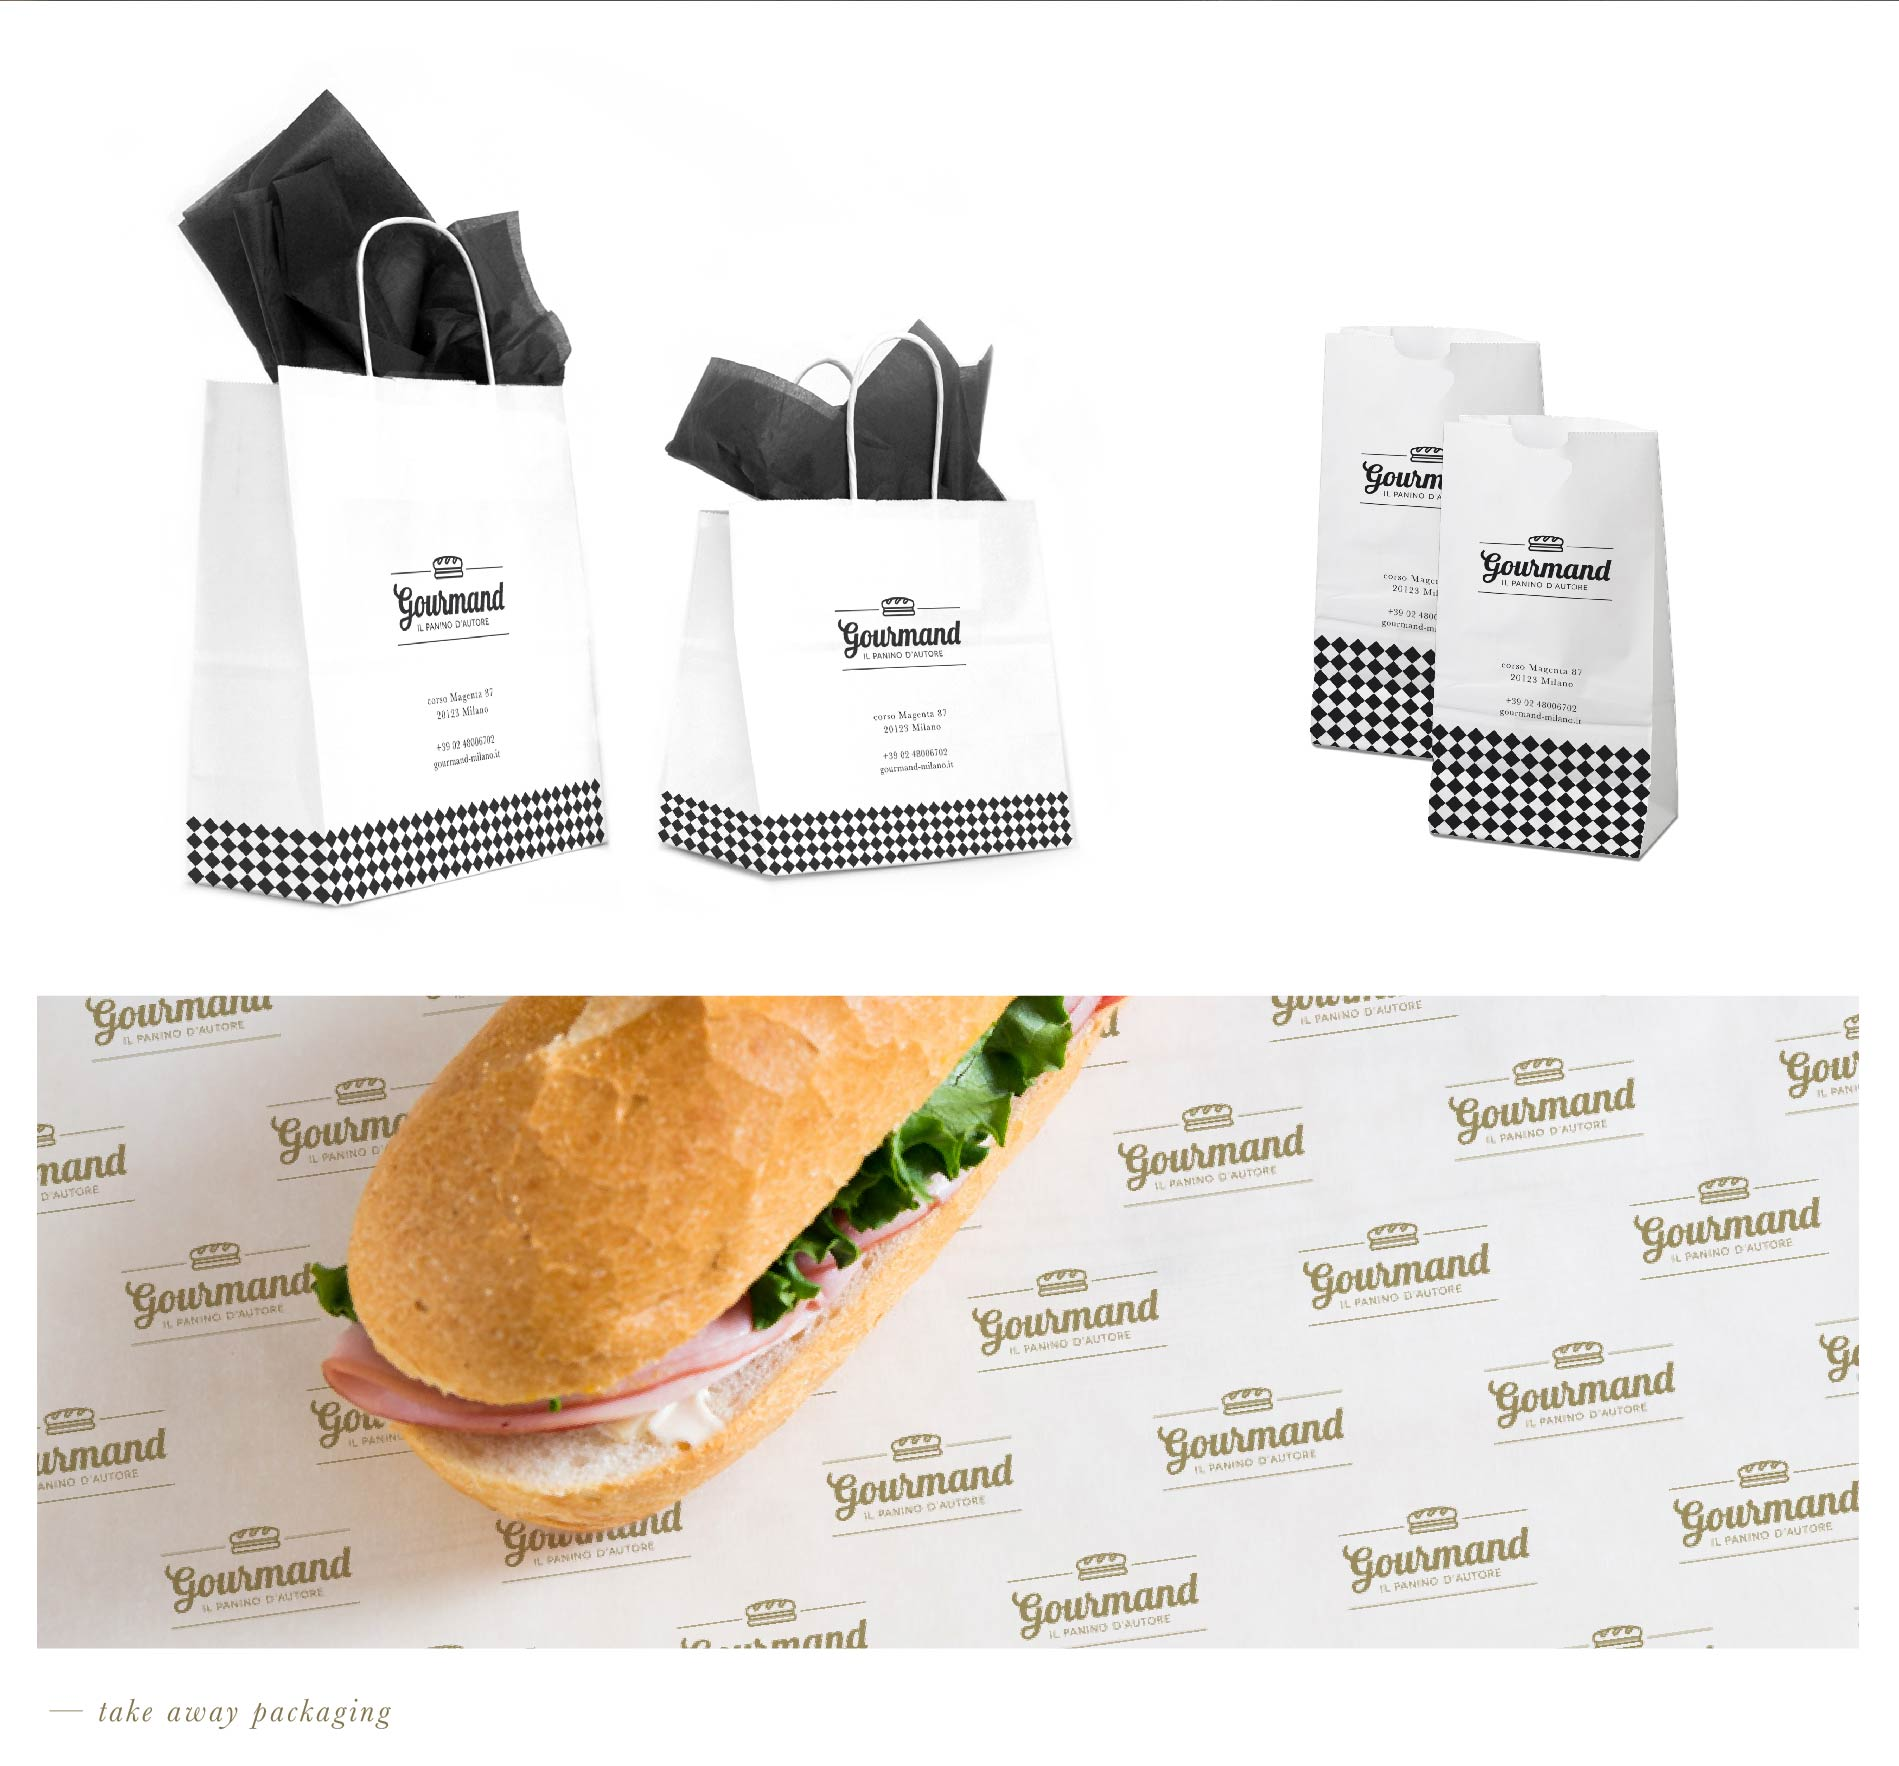 08-Gourmand-panino-autore-take-away-packaging